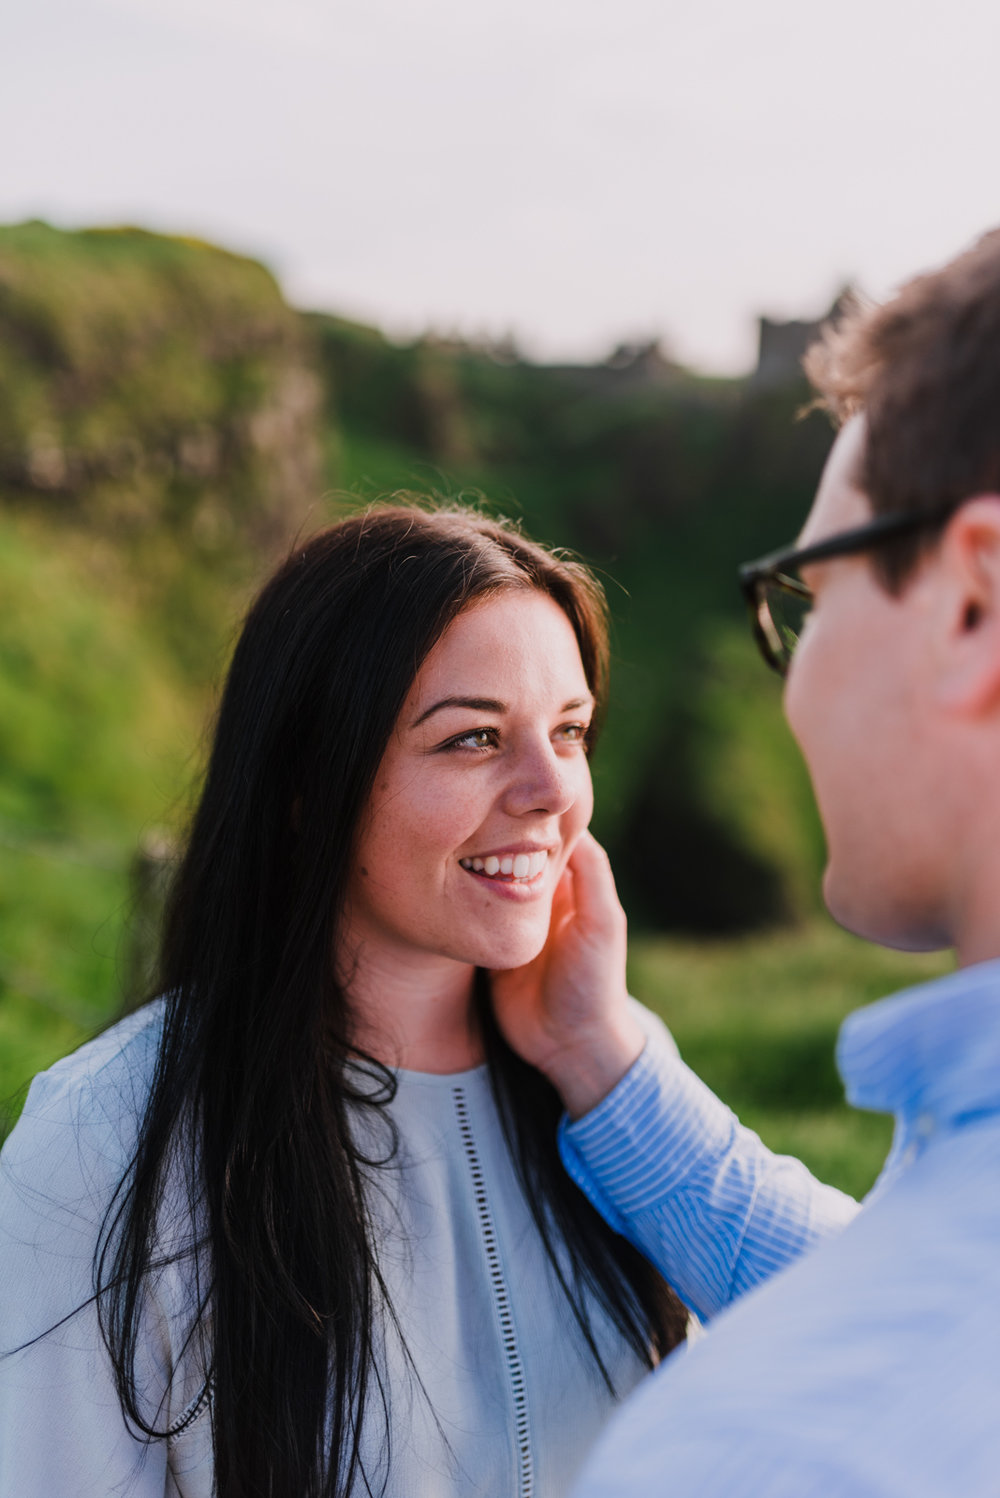 sunset engagement photos by Hello, Sugar taken at Dunluce Castle, Northern Ireland-6.jpg